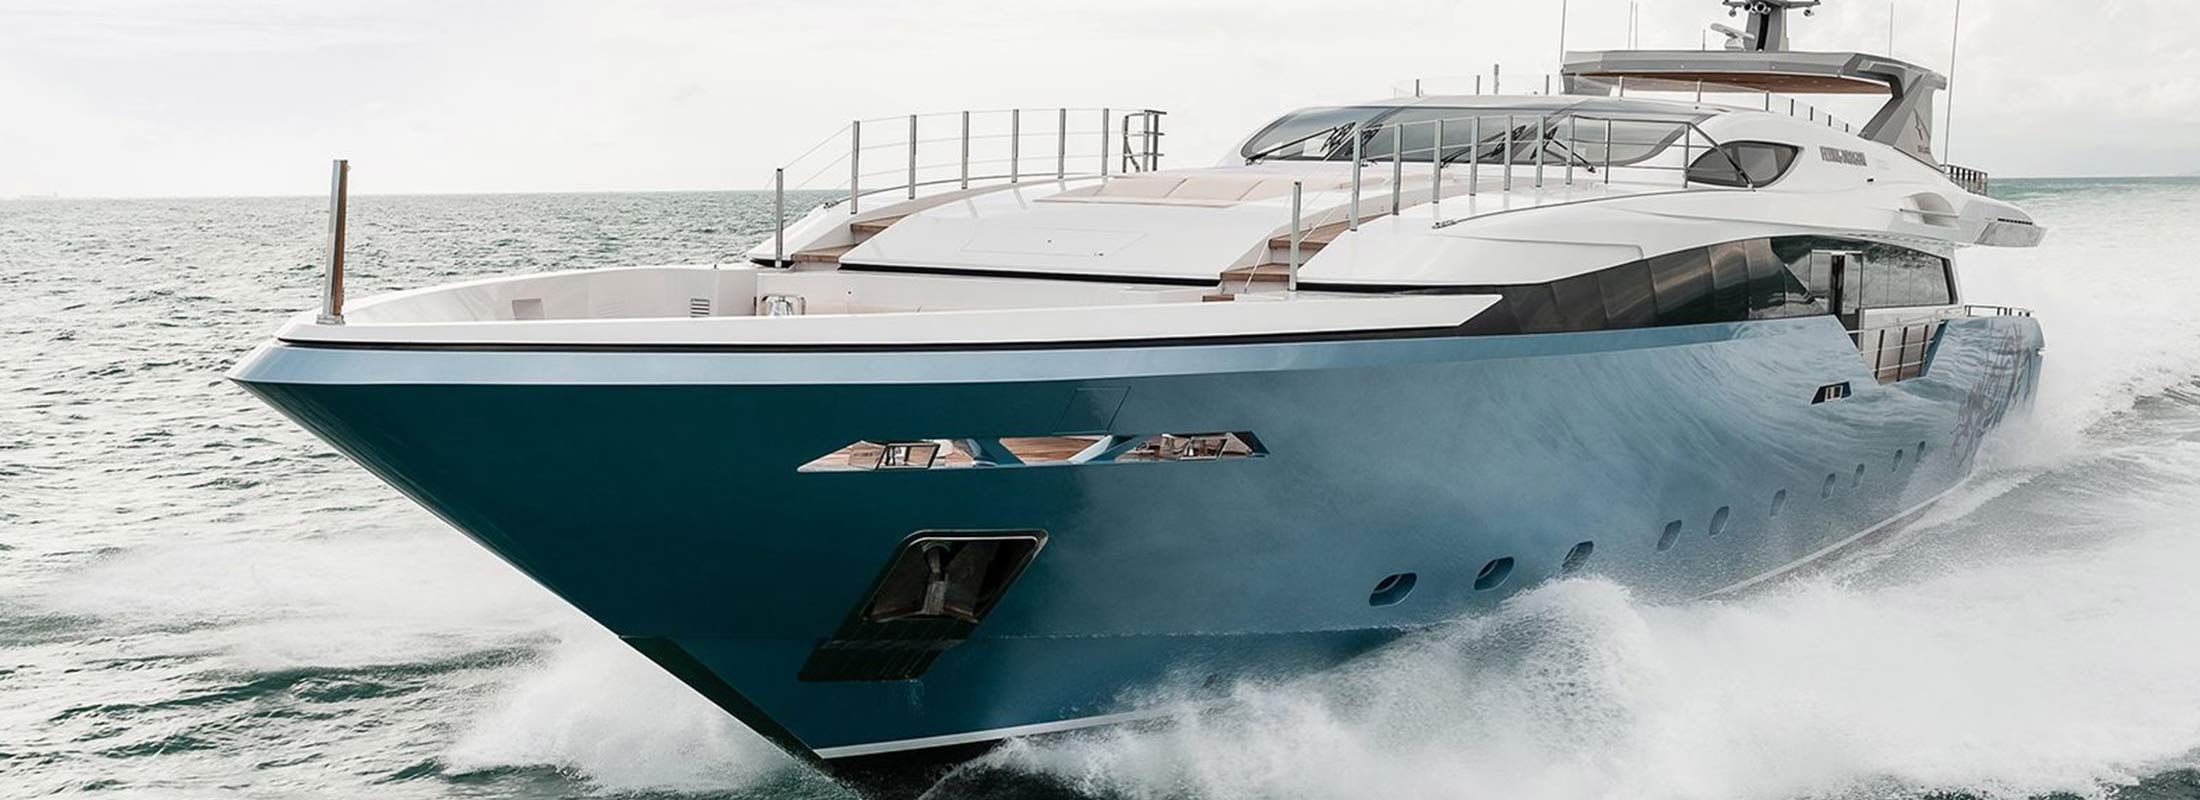 Dragon Motor Yacht for Charter Mediterranean slider 2